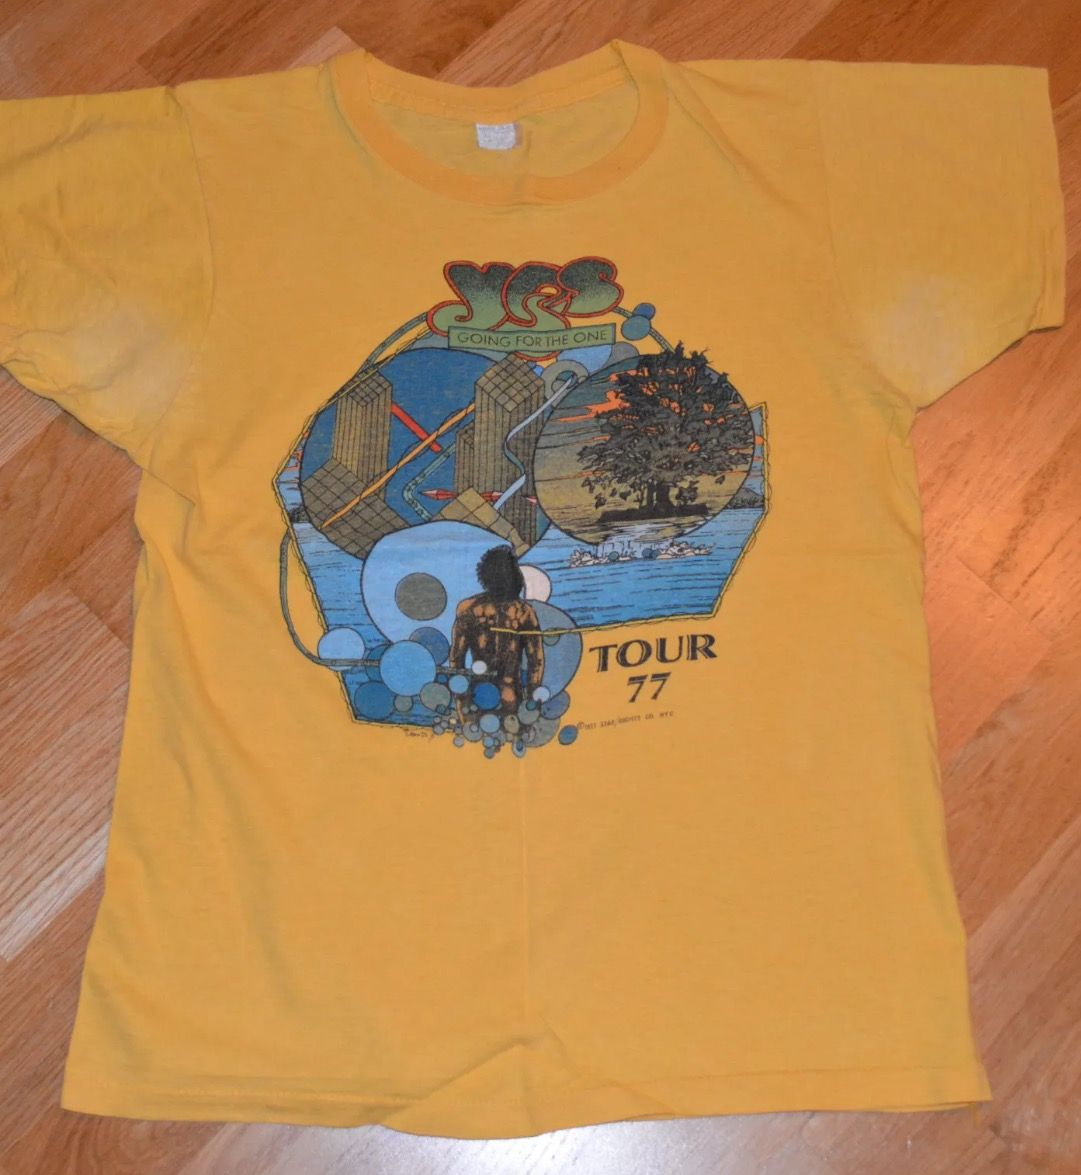 5db6c34899536 Pin by Kool Krap on Vintage Rock Tour T-Shirts | Tour t shirts ...